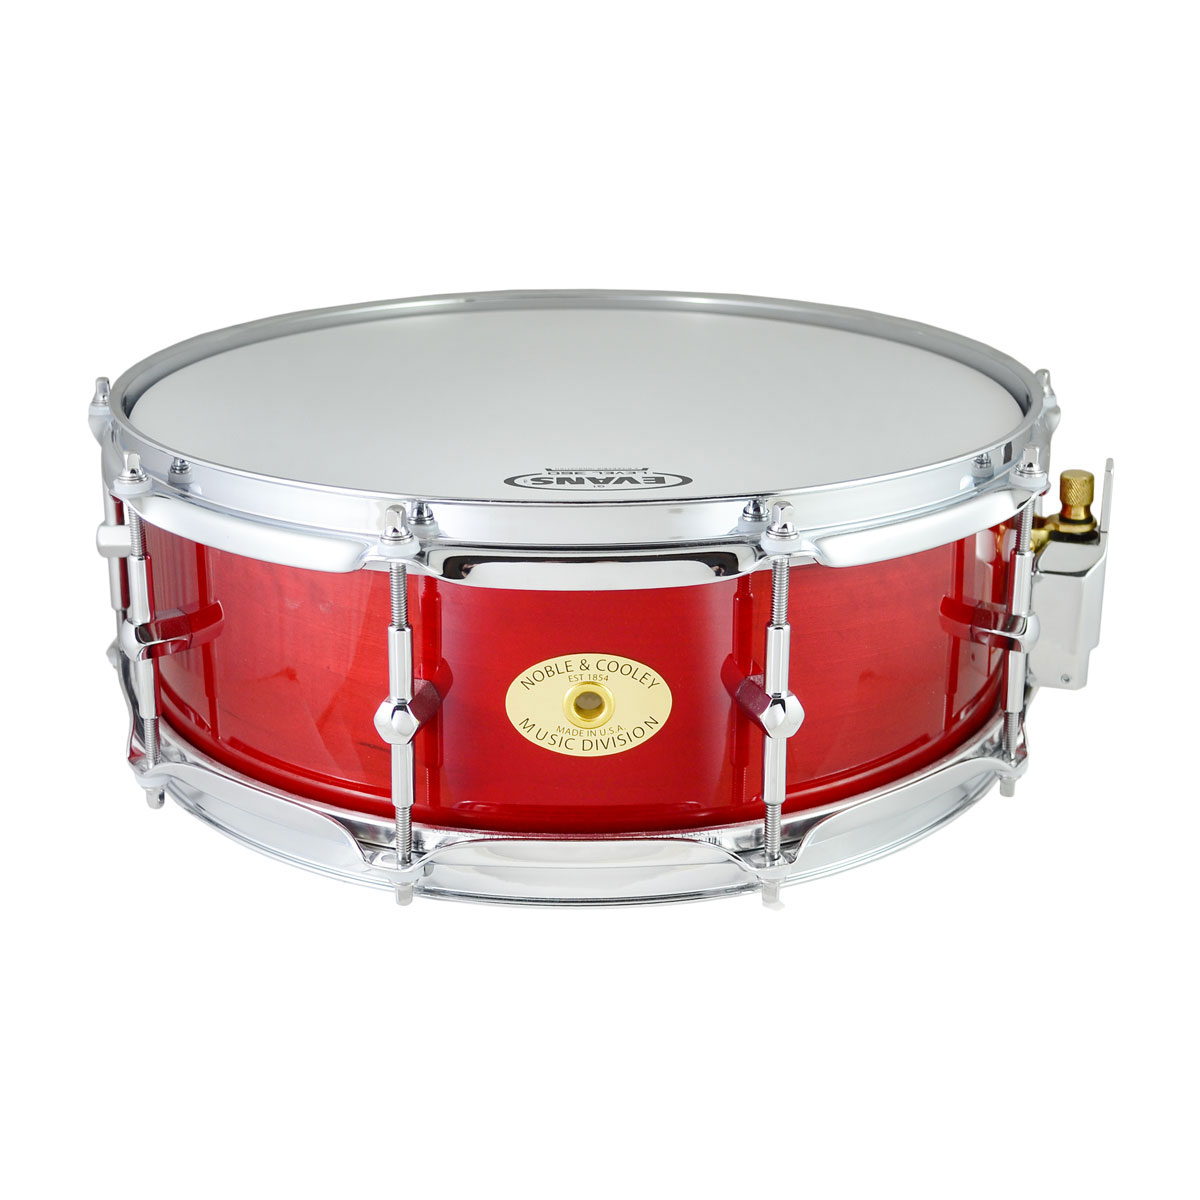 """Noble & Cooley 5"""" x 14"""" Classic Solid Shell Birch Snare Drum in Translucent Red Gloss"""